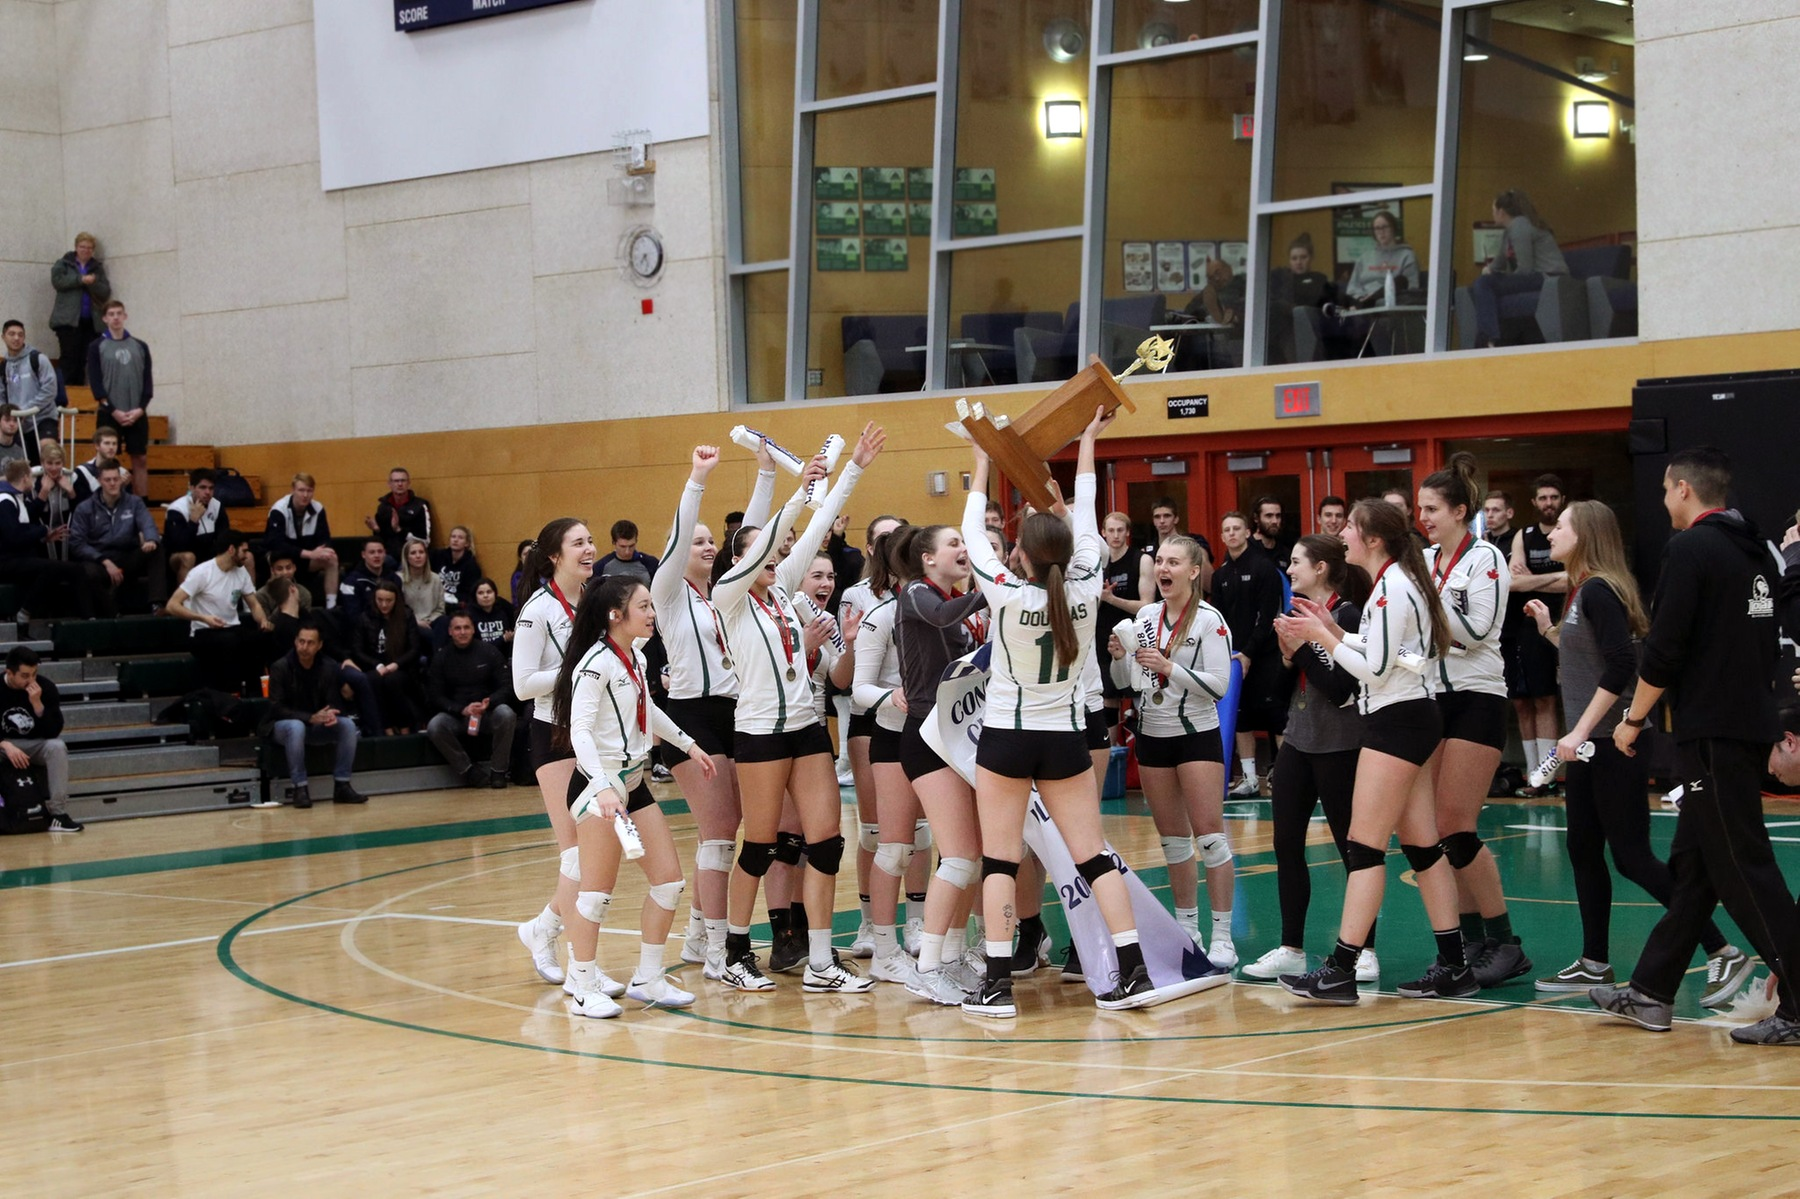 Women's Volleyball wins first Provincial title since 1995